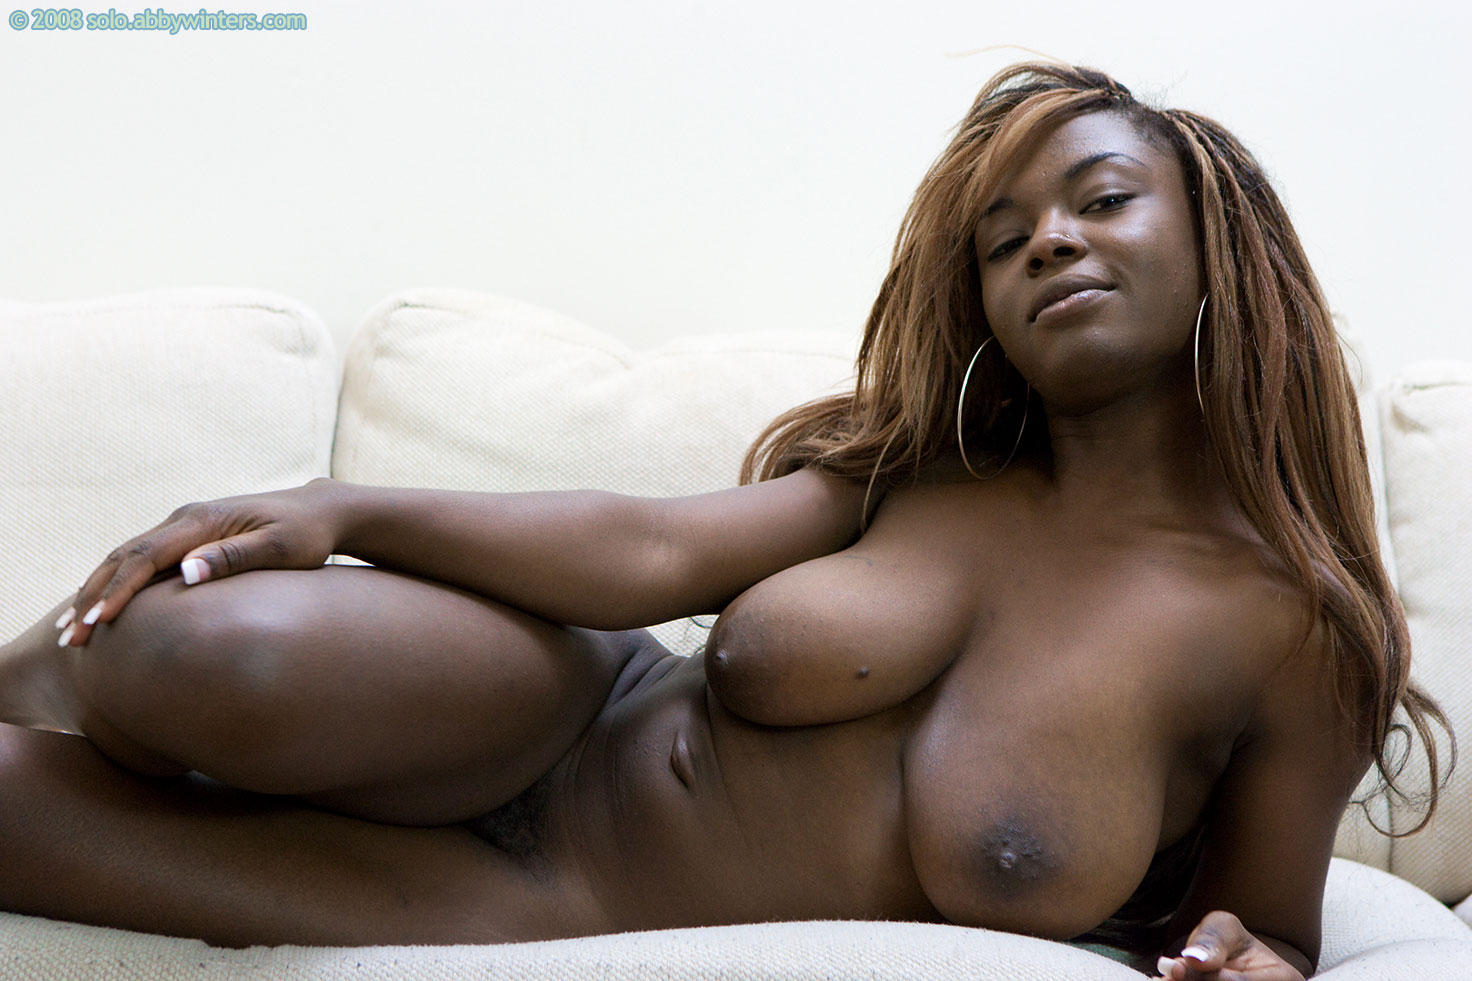 Hot nude black women movies and pics think, that